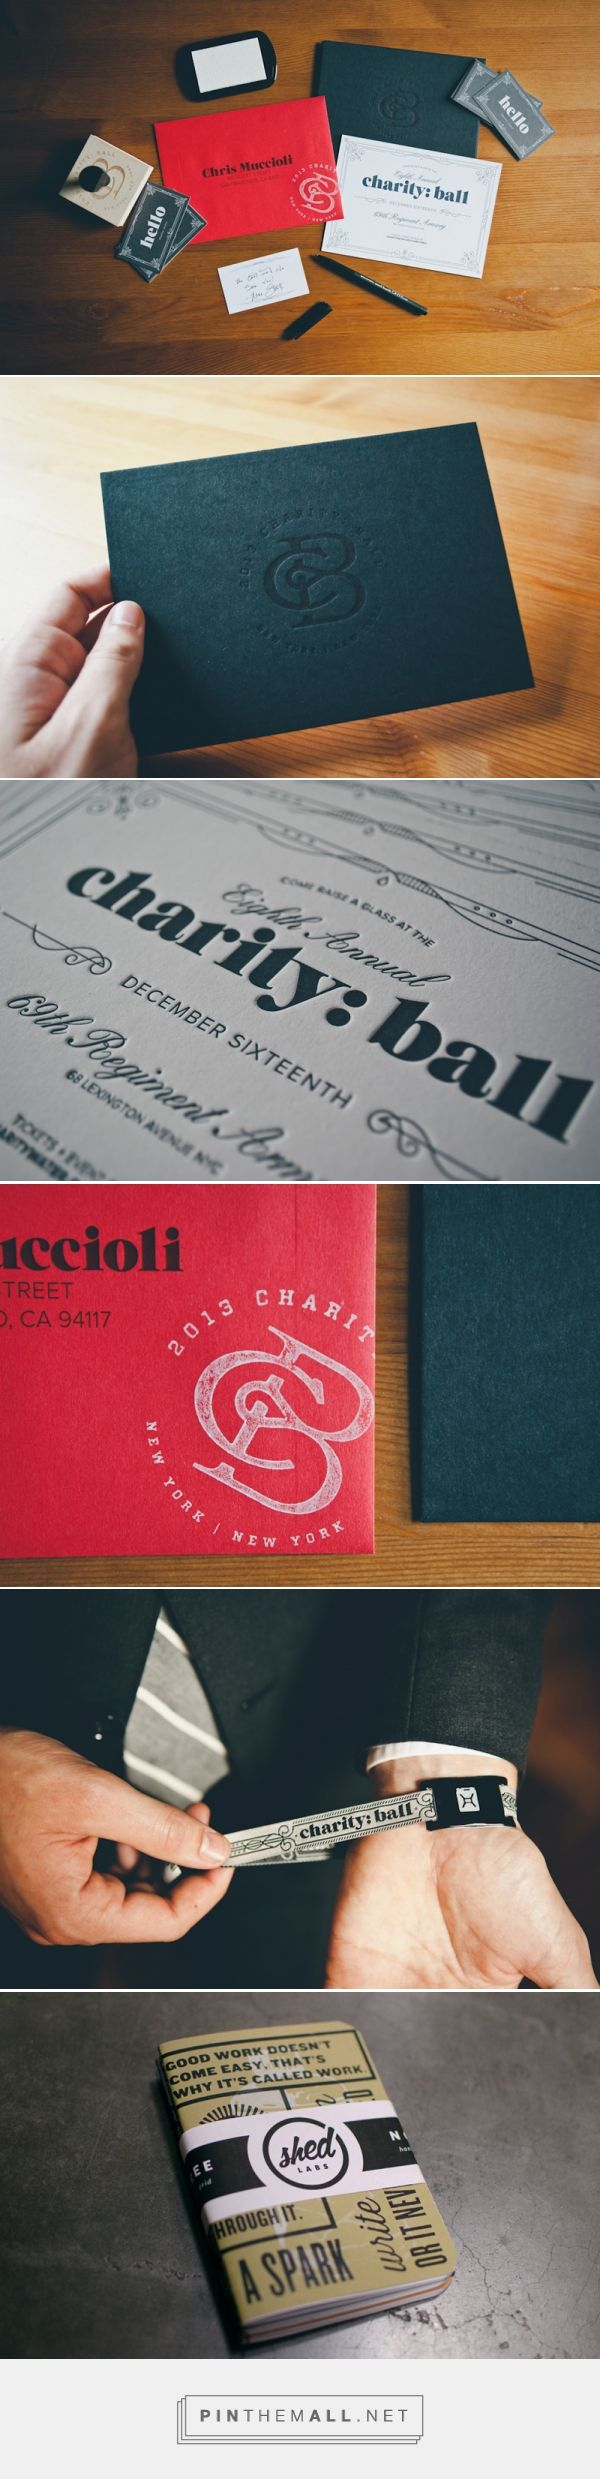 business event invitation templates%0A Charity  Ball Invitations by Mike Smith More